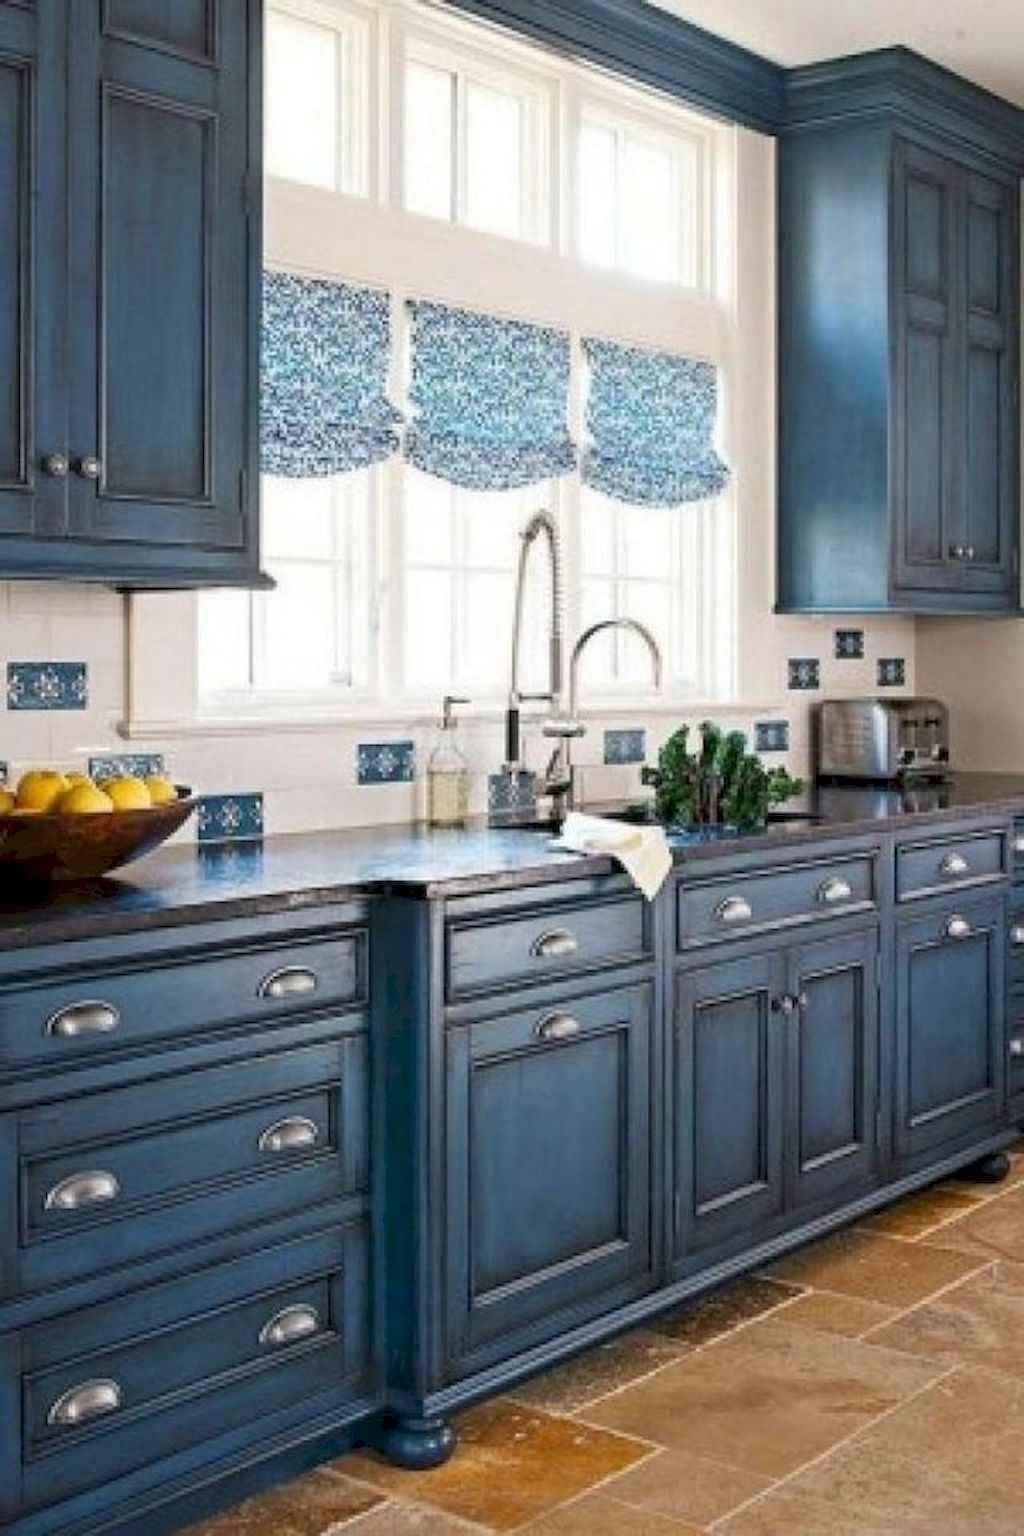 10 beautiful farmhouse kitchen cabinet makeover design ideas country kitchen farmhouse on farmhouse kitchen cabinets id=68020